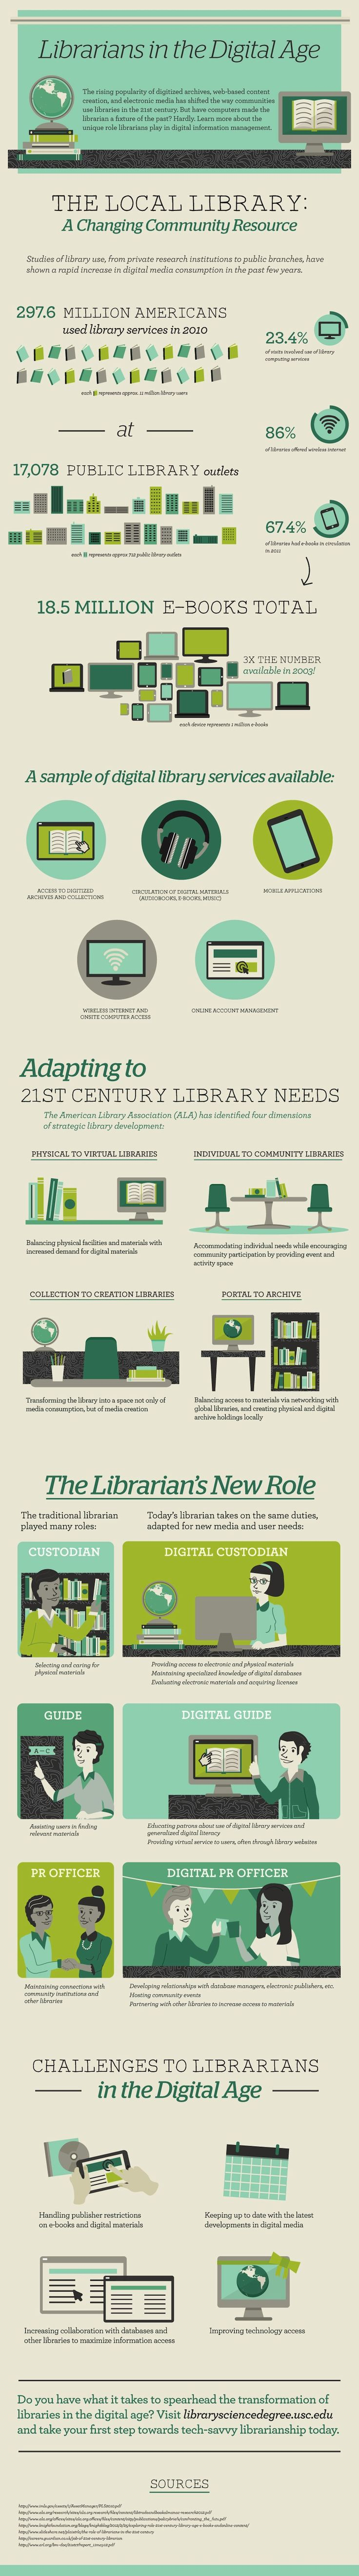 In Digital Age, Librarians Are Needed More Than Ever (infographic)